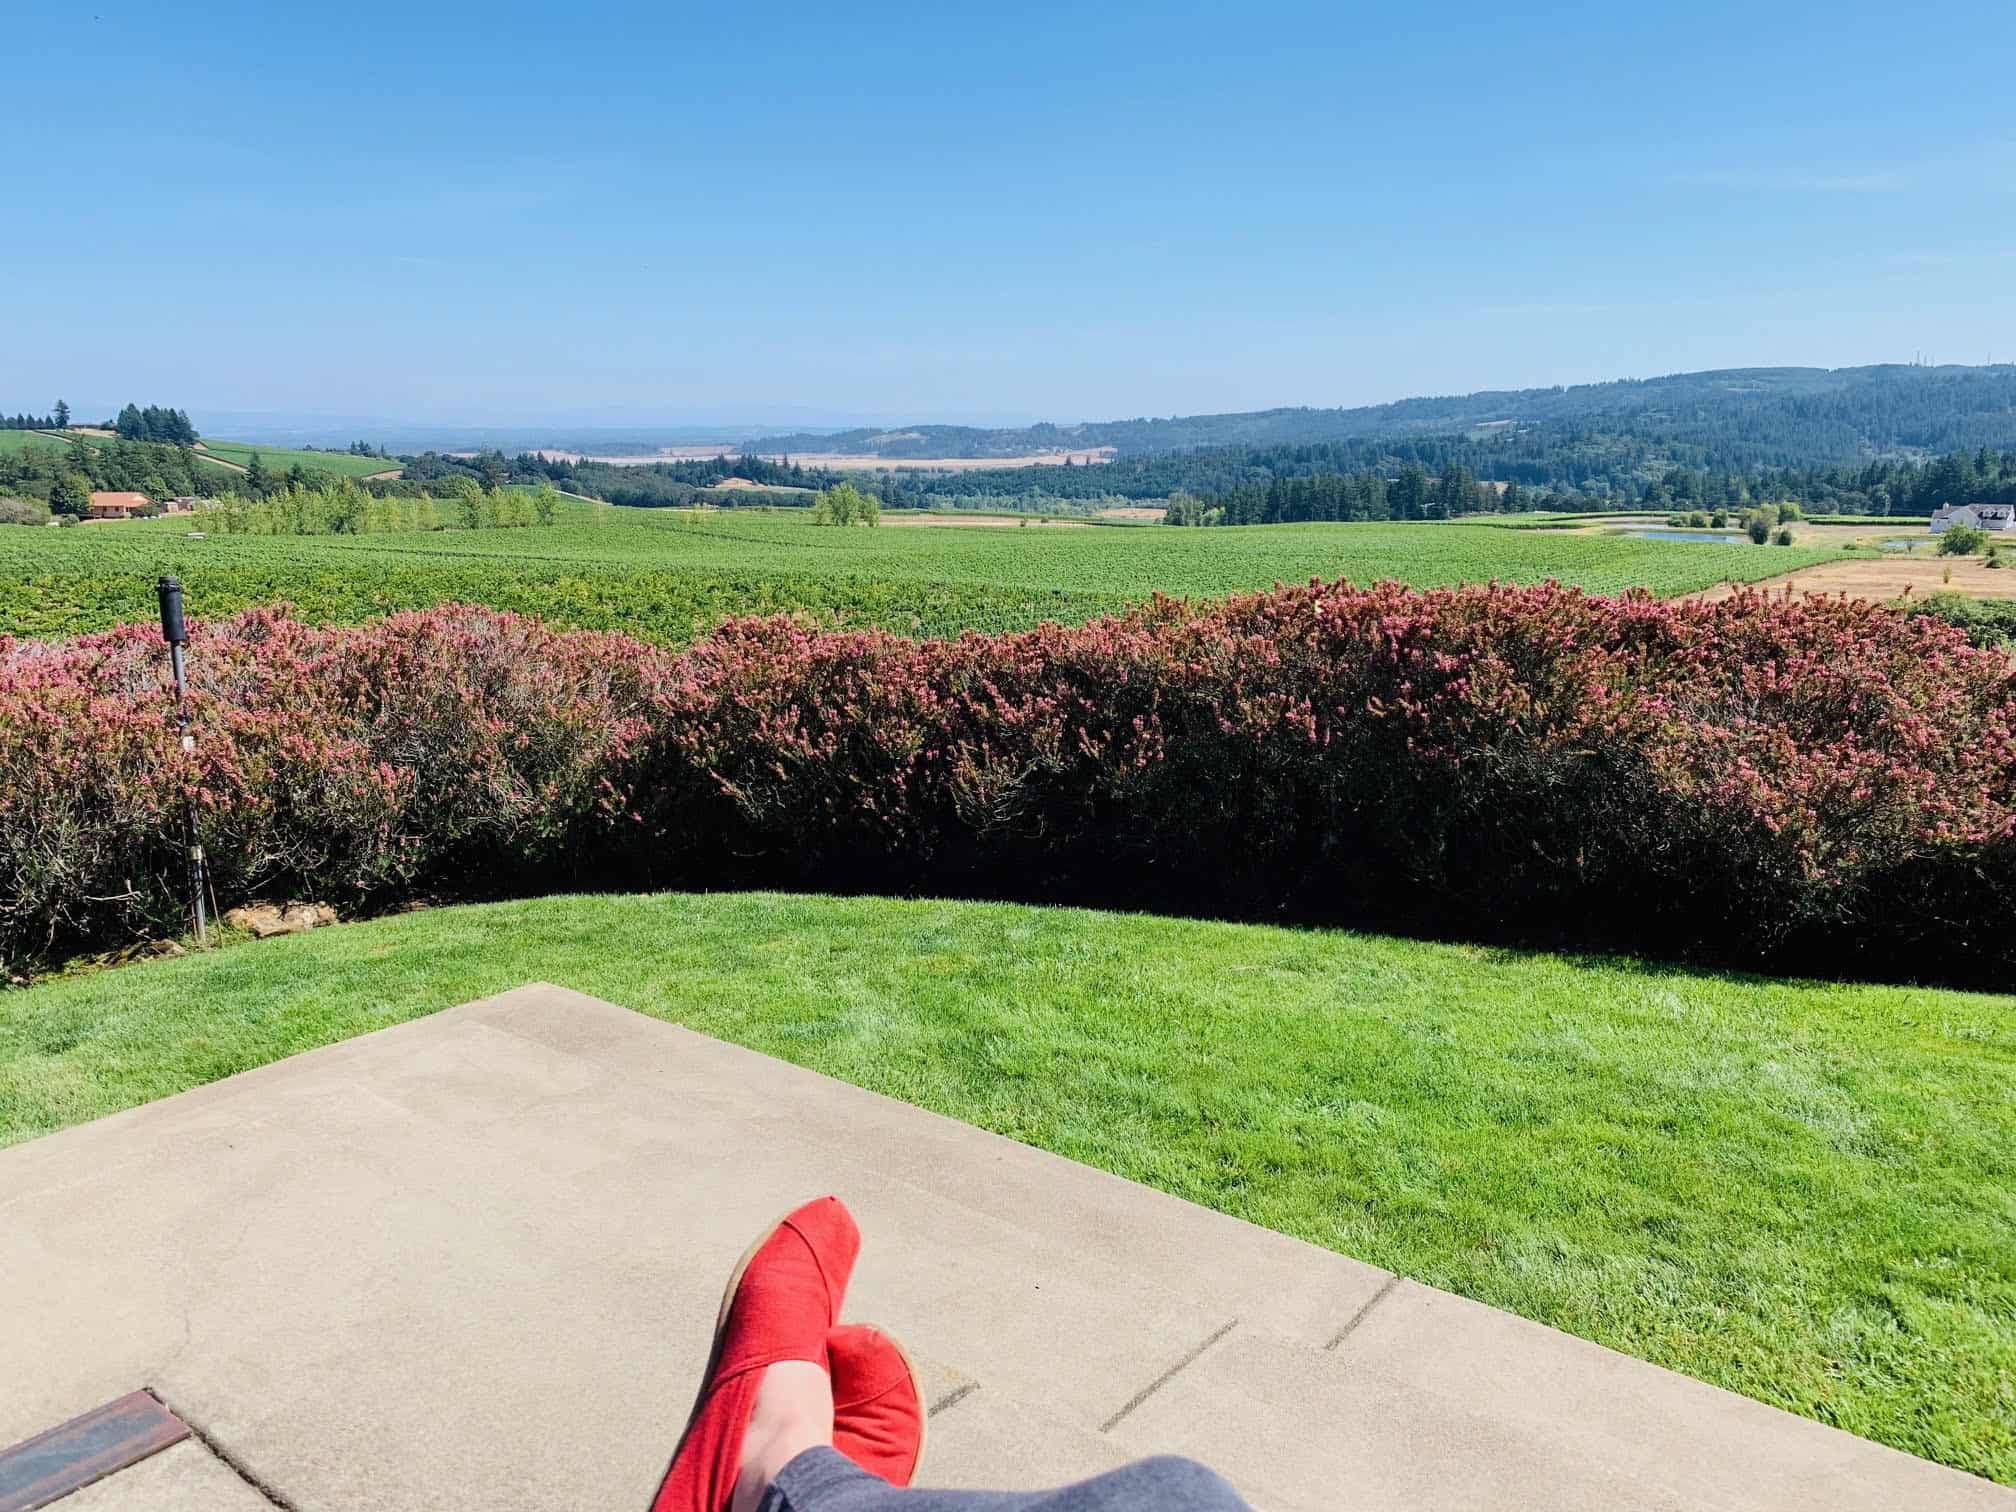 Relaxing in Willamette Valley wine country.